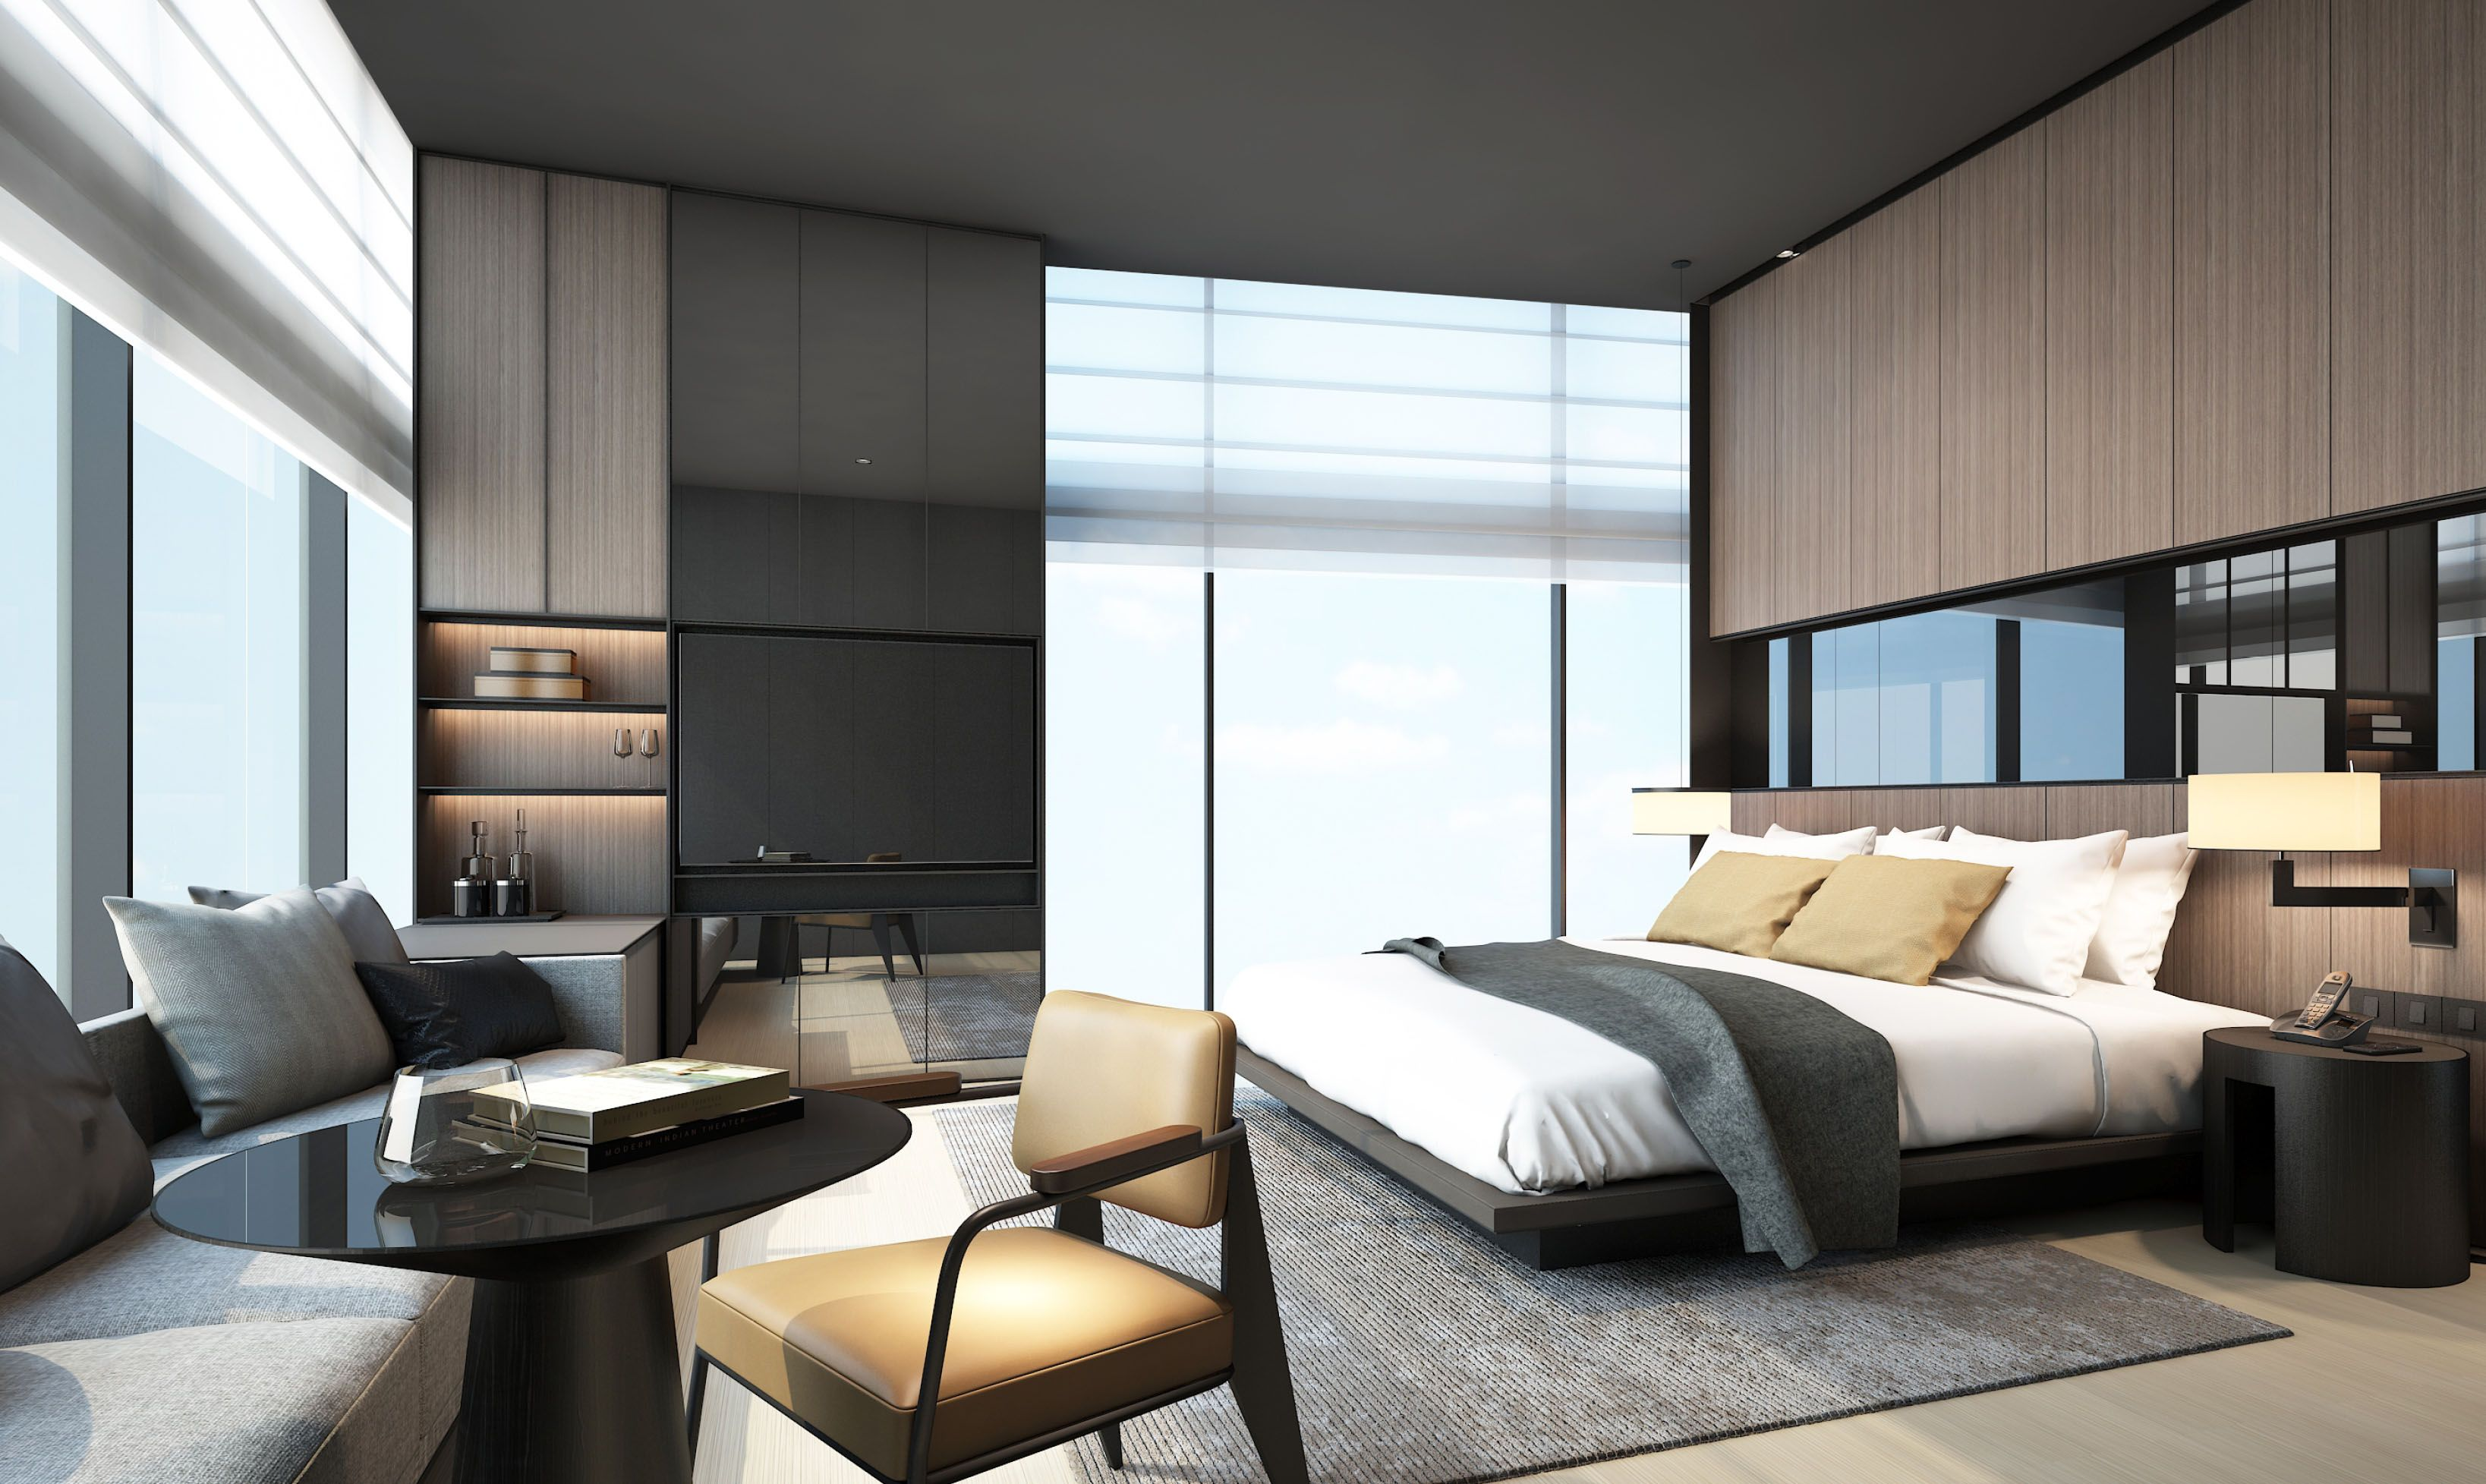 Scda hotel development singapore suites scda for Hotel suite design